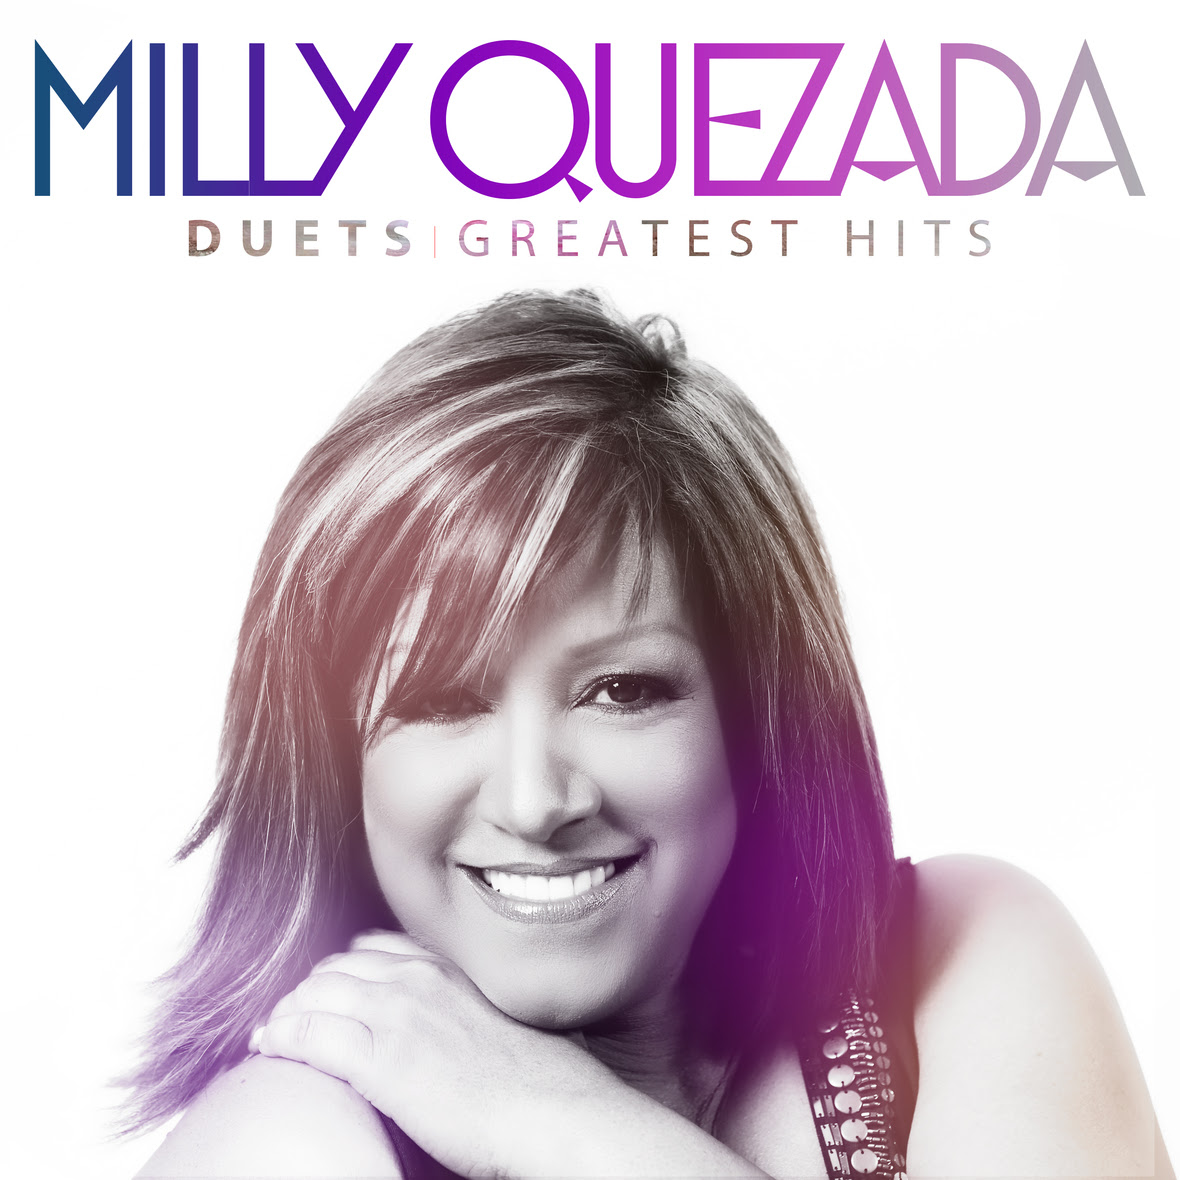 MILLY QUEZADA - DUETS GREATEST HITS